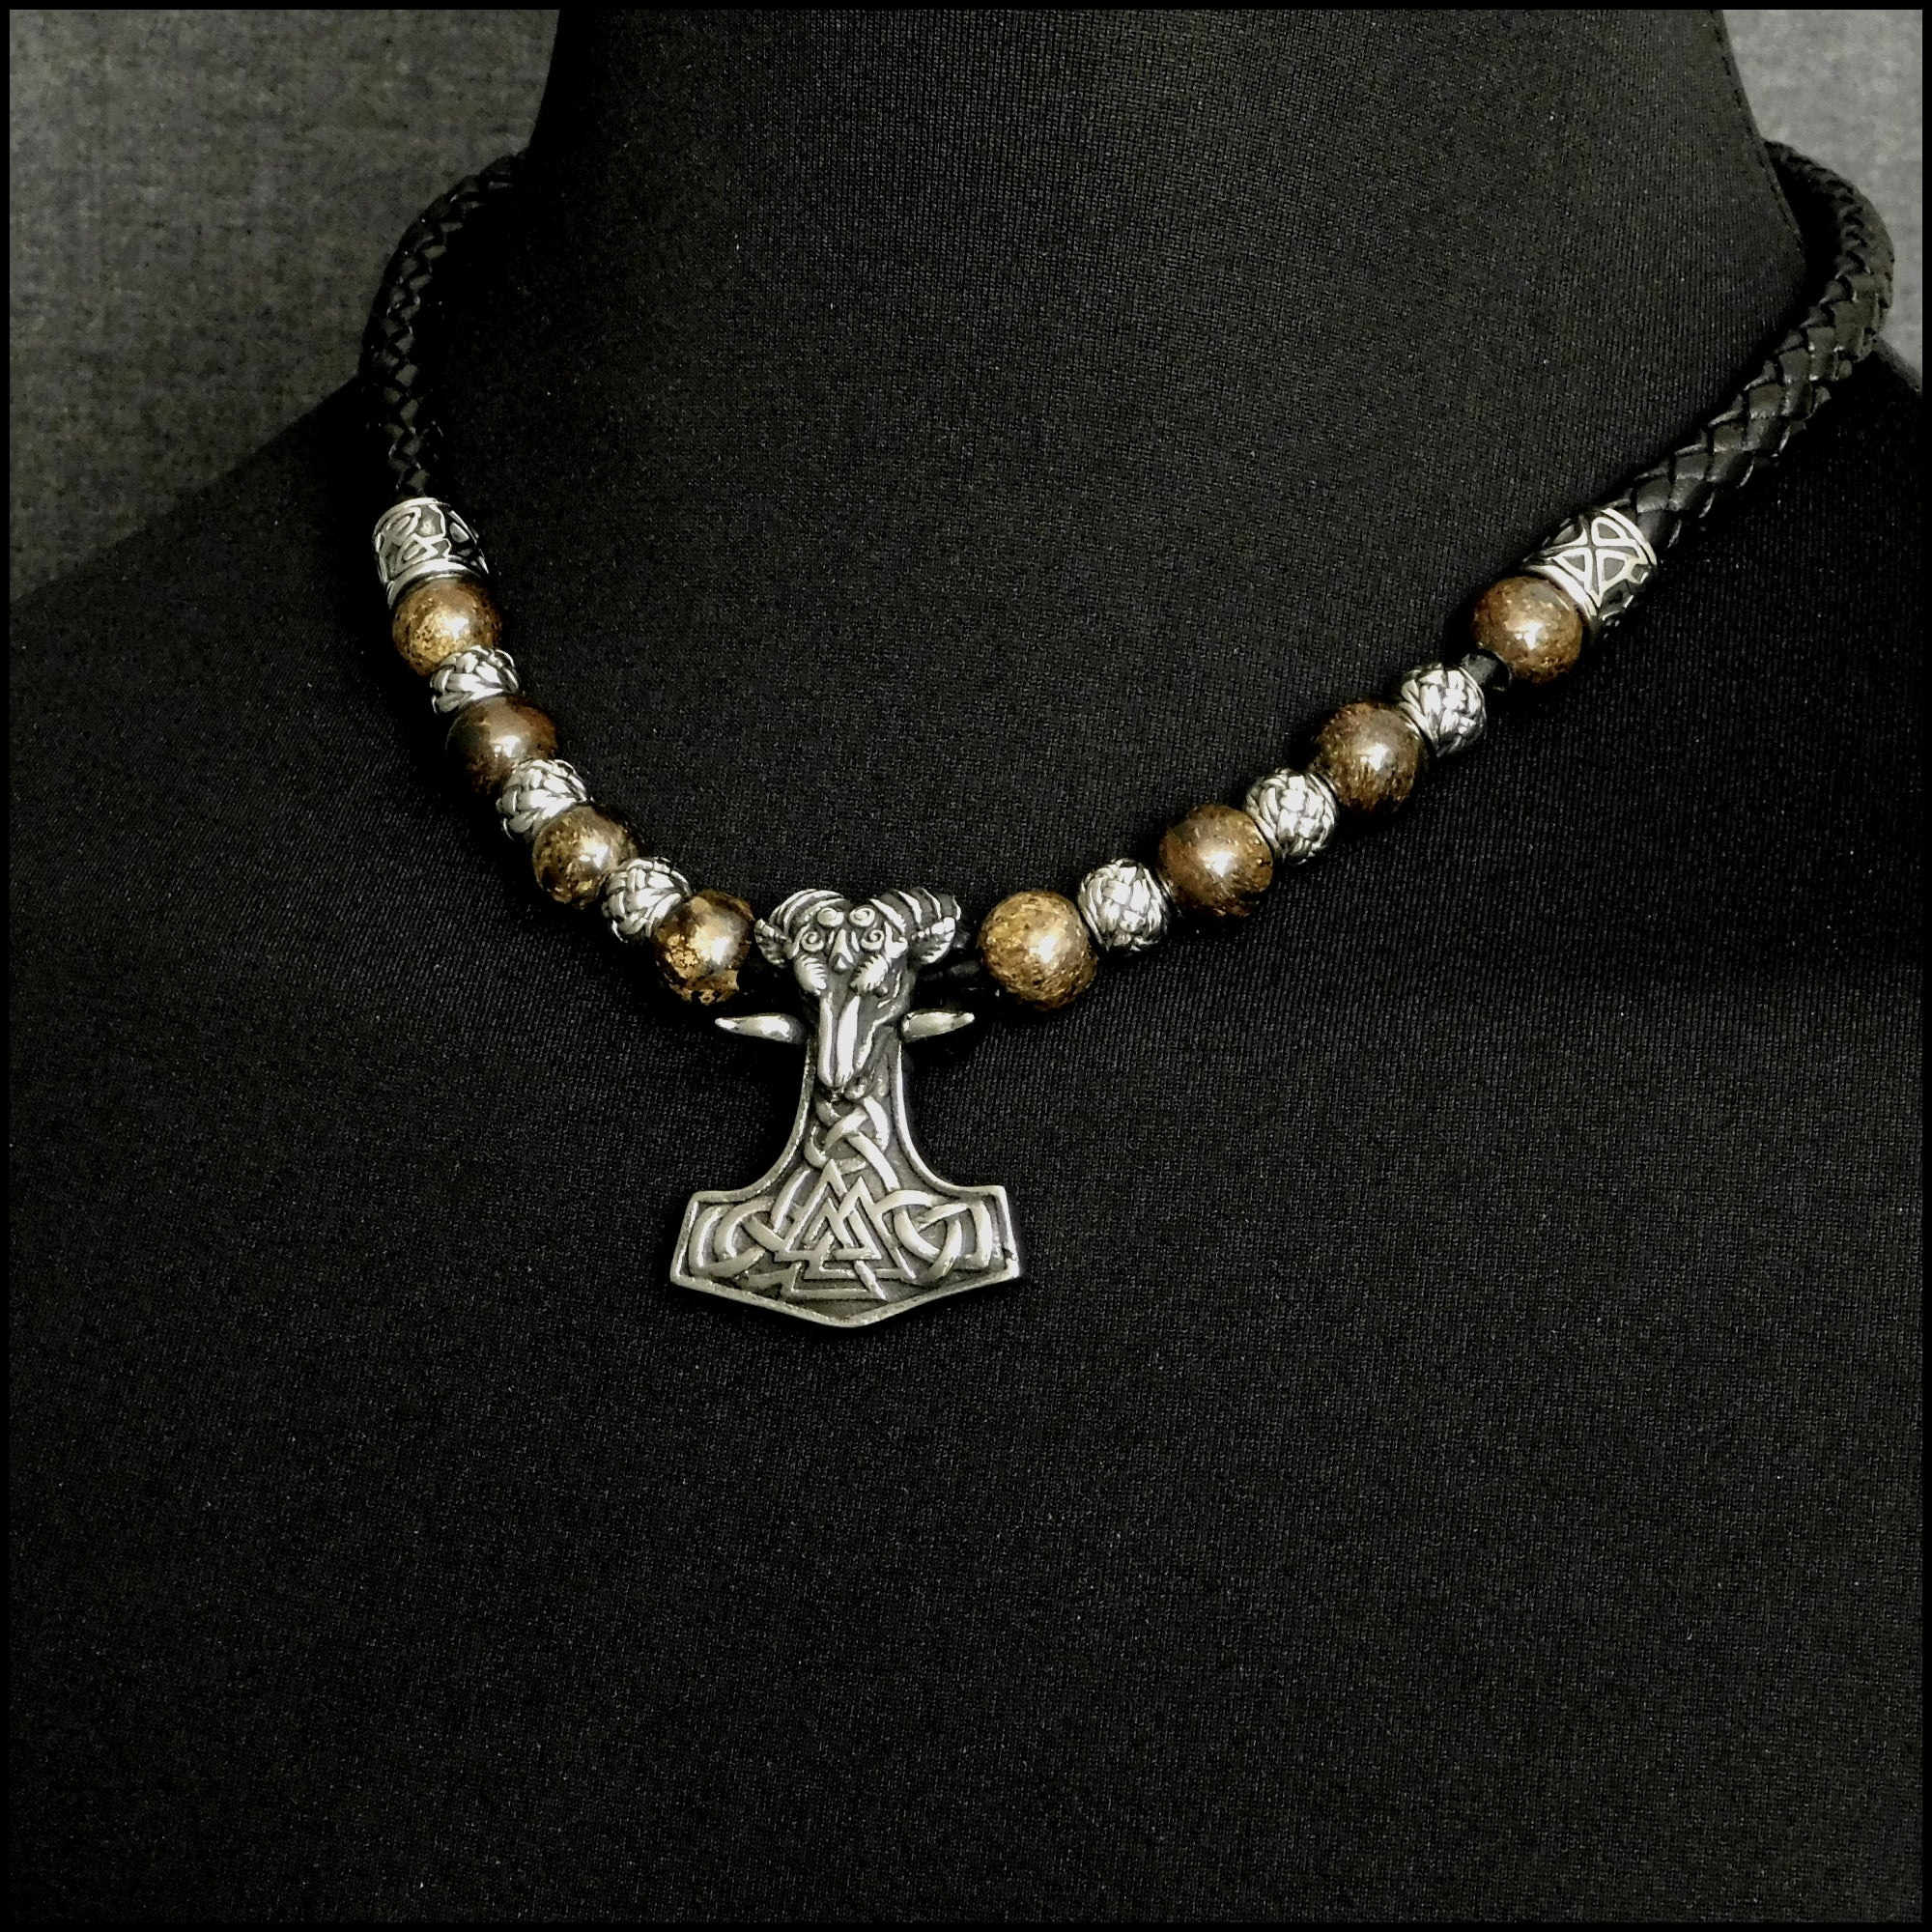 Beautifully Detailed Ram Mjolnir W/Viking Valknut Symbol on Leather Necklace w/Stone & Steel Beads